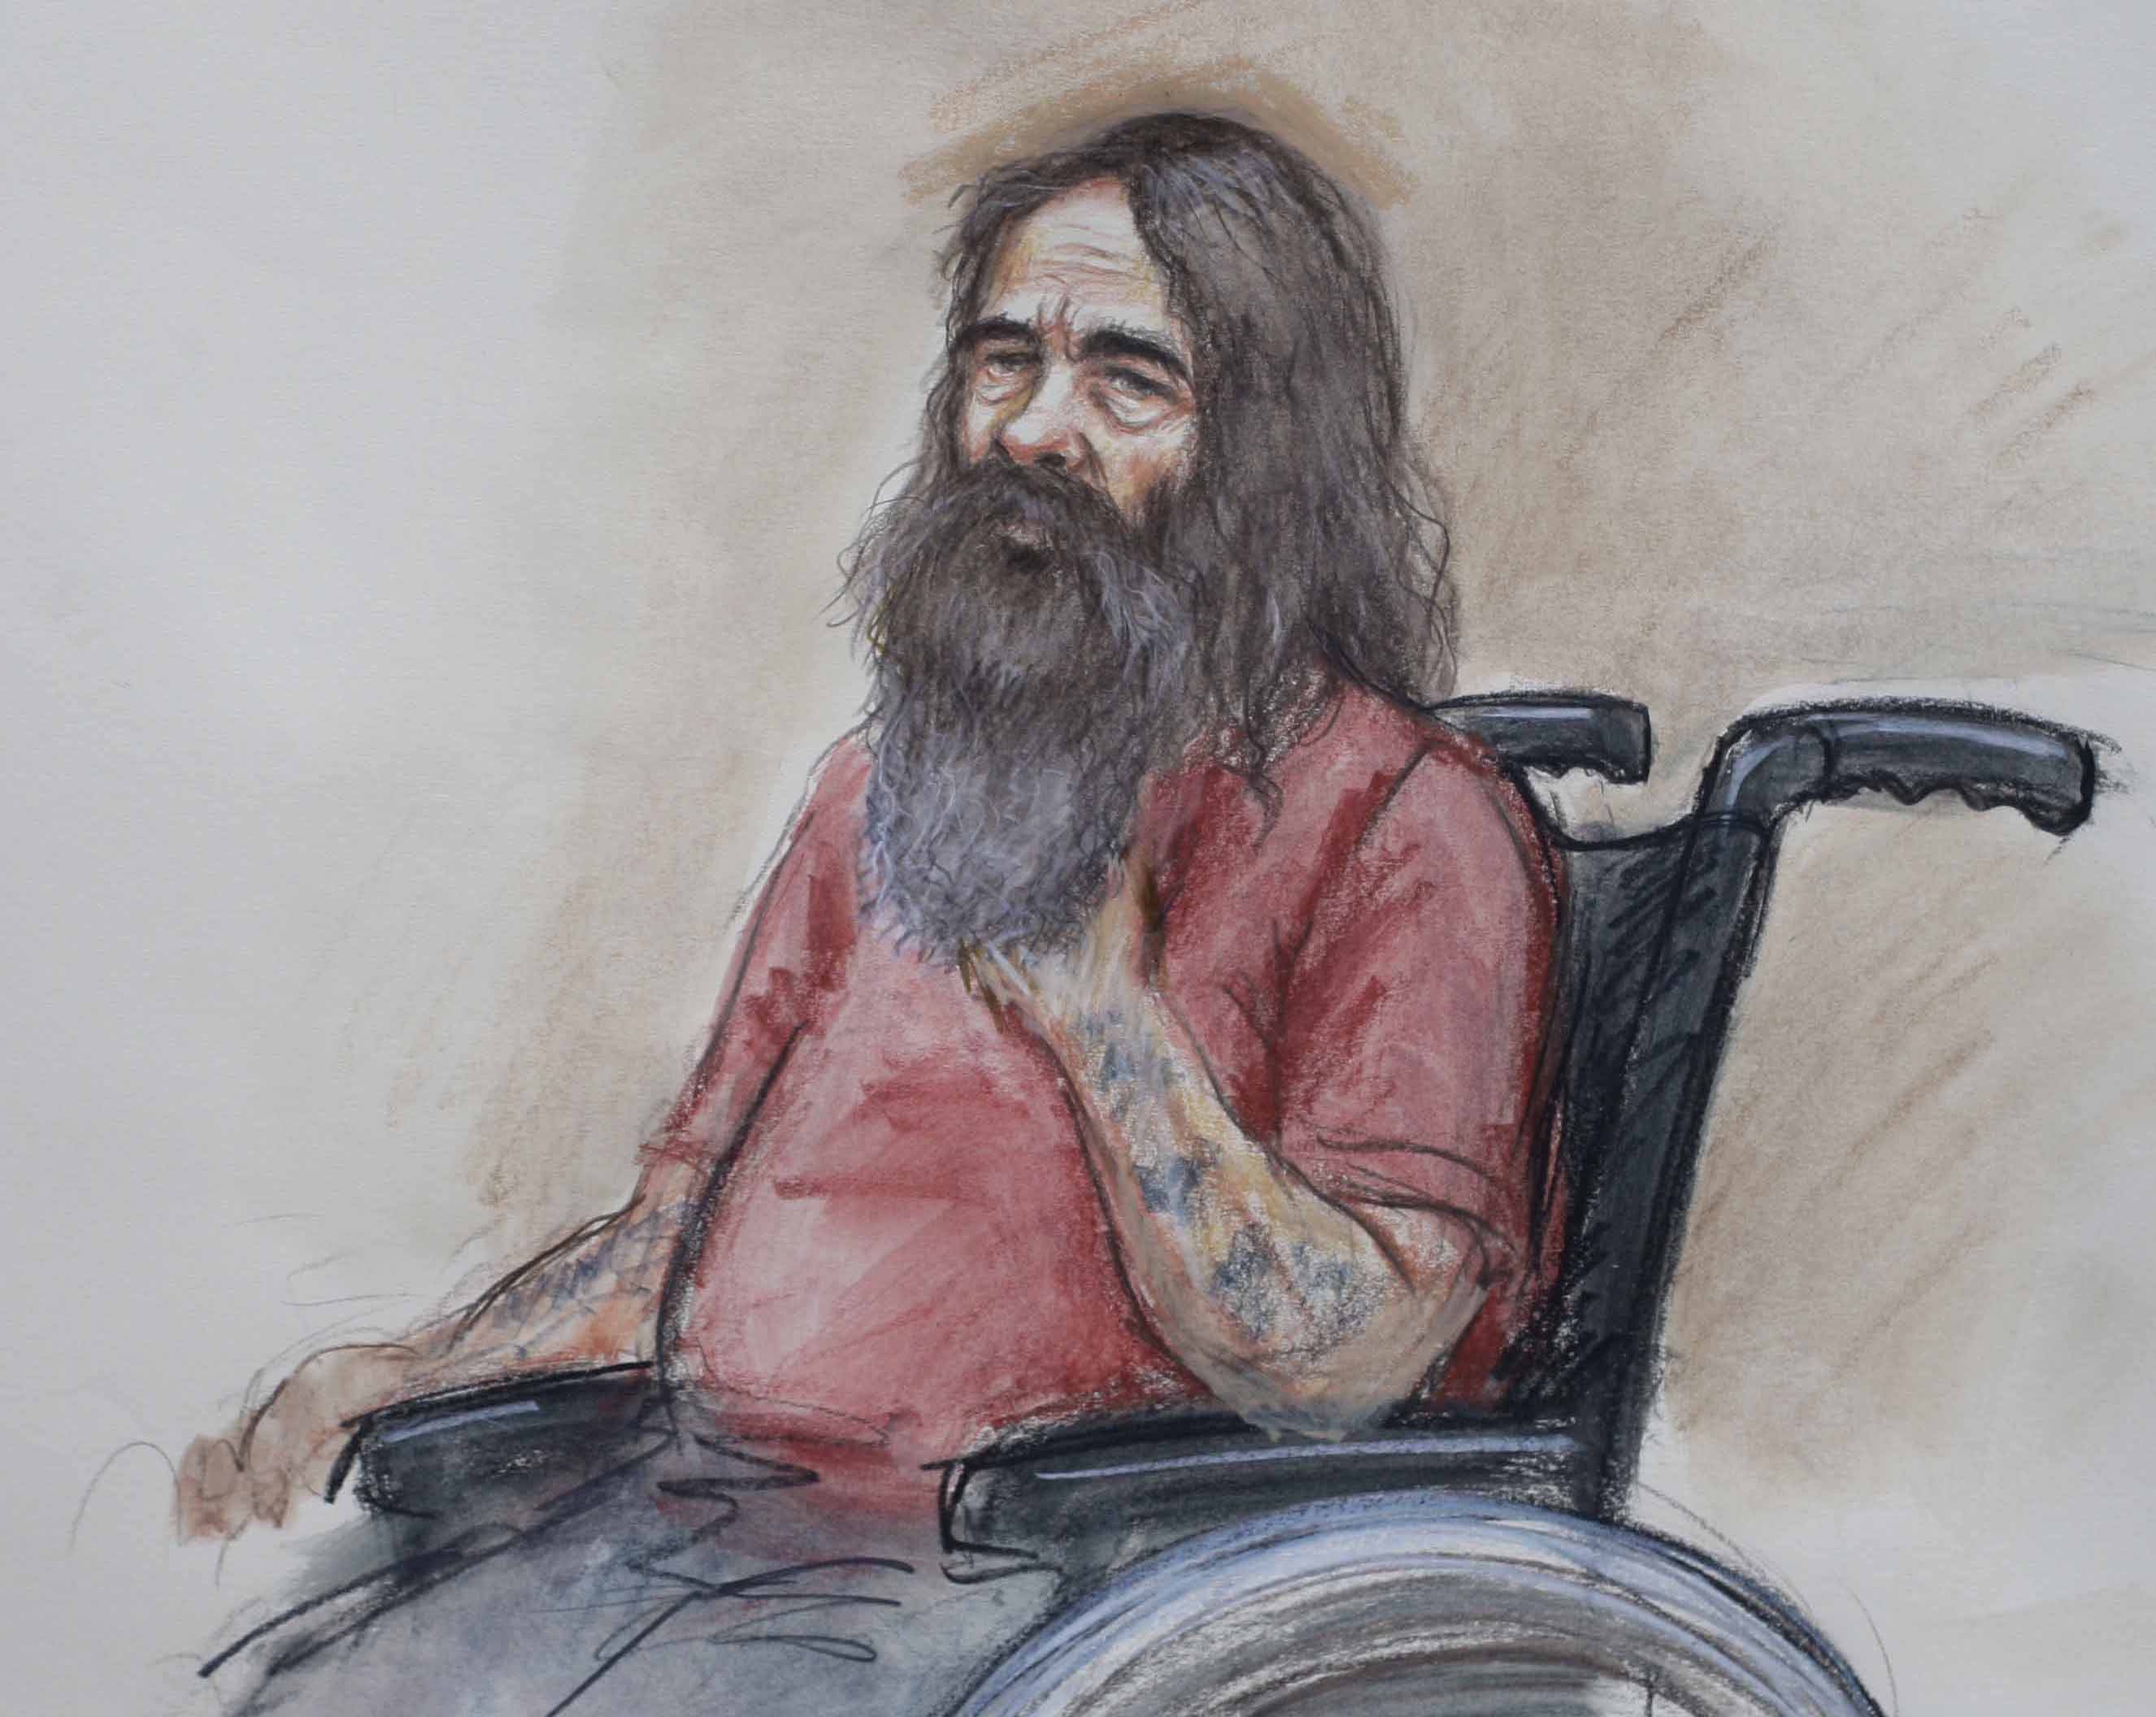 Artist impression of Robin Ligus, a 58-year-old prisoner who has been charged with three murders